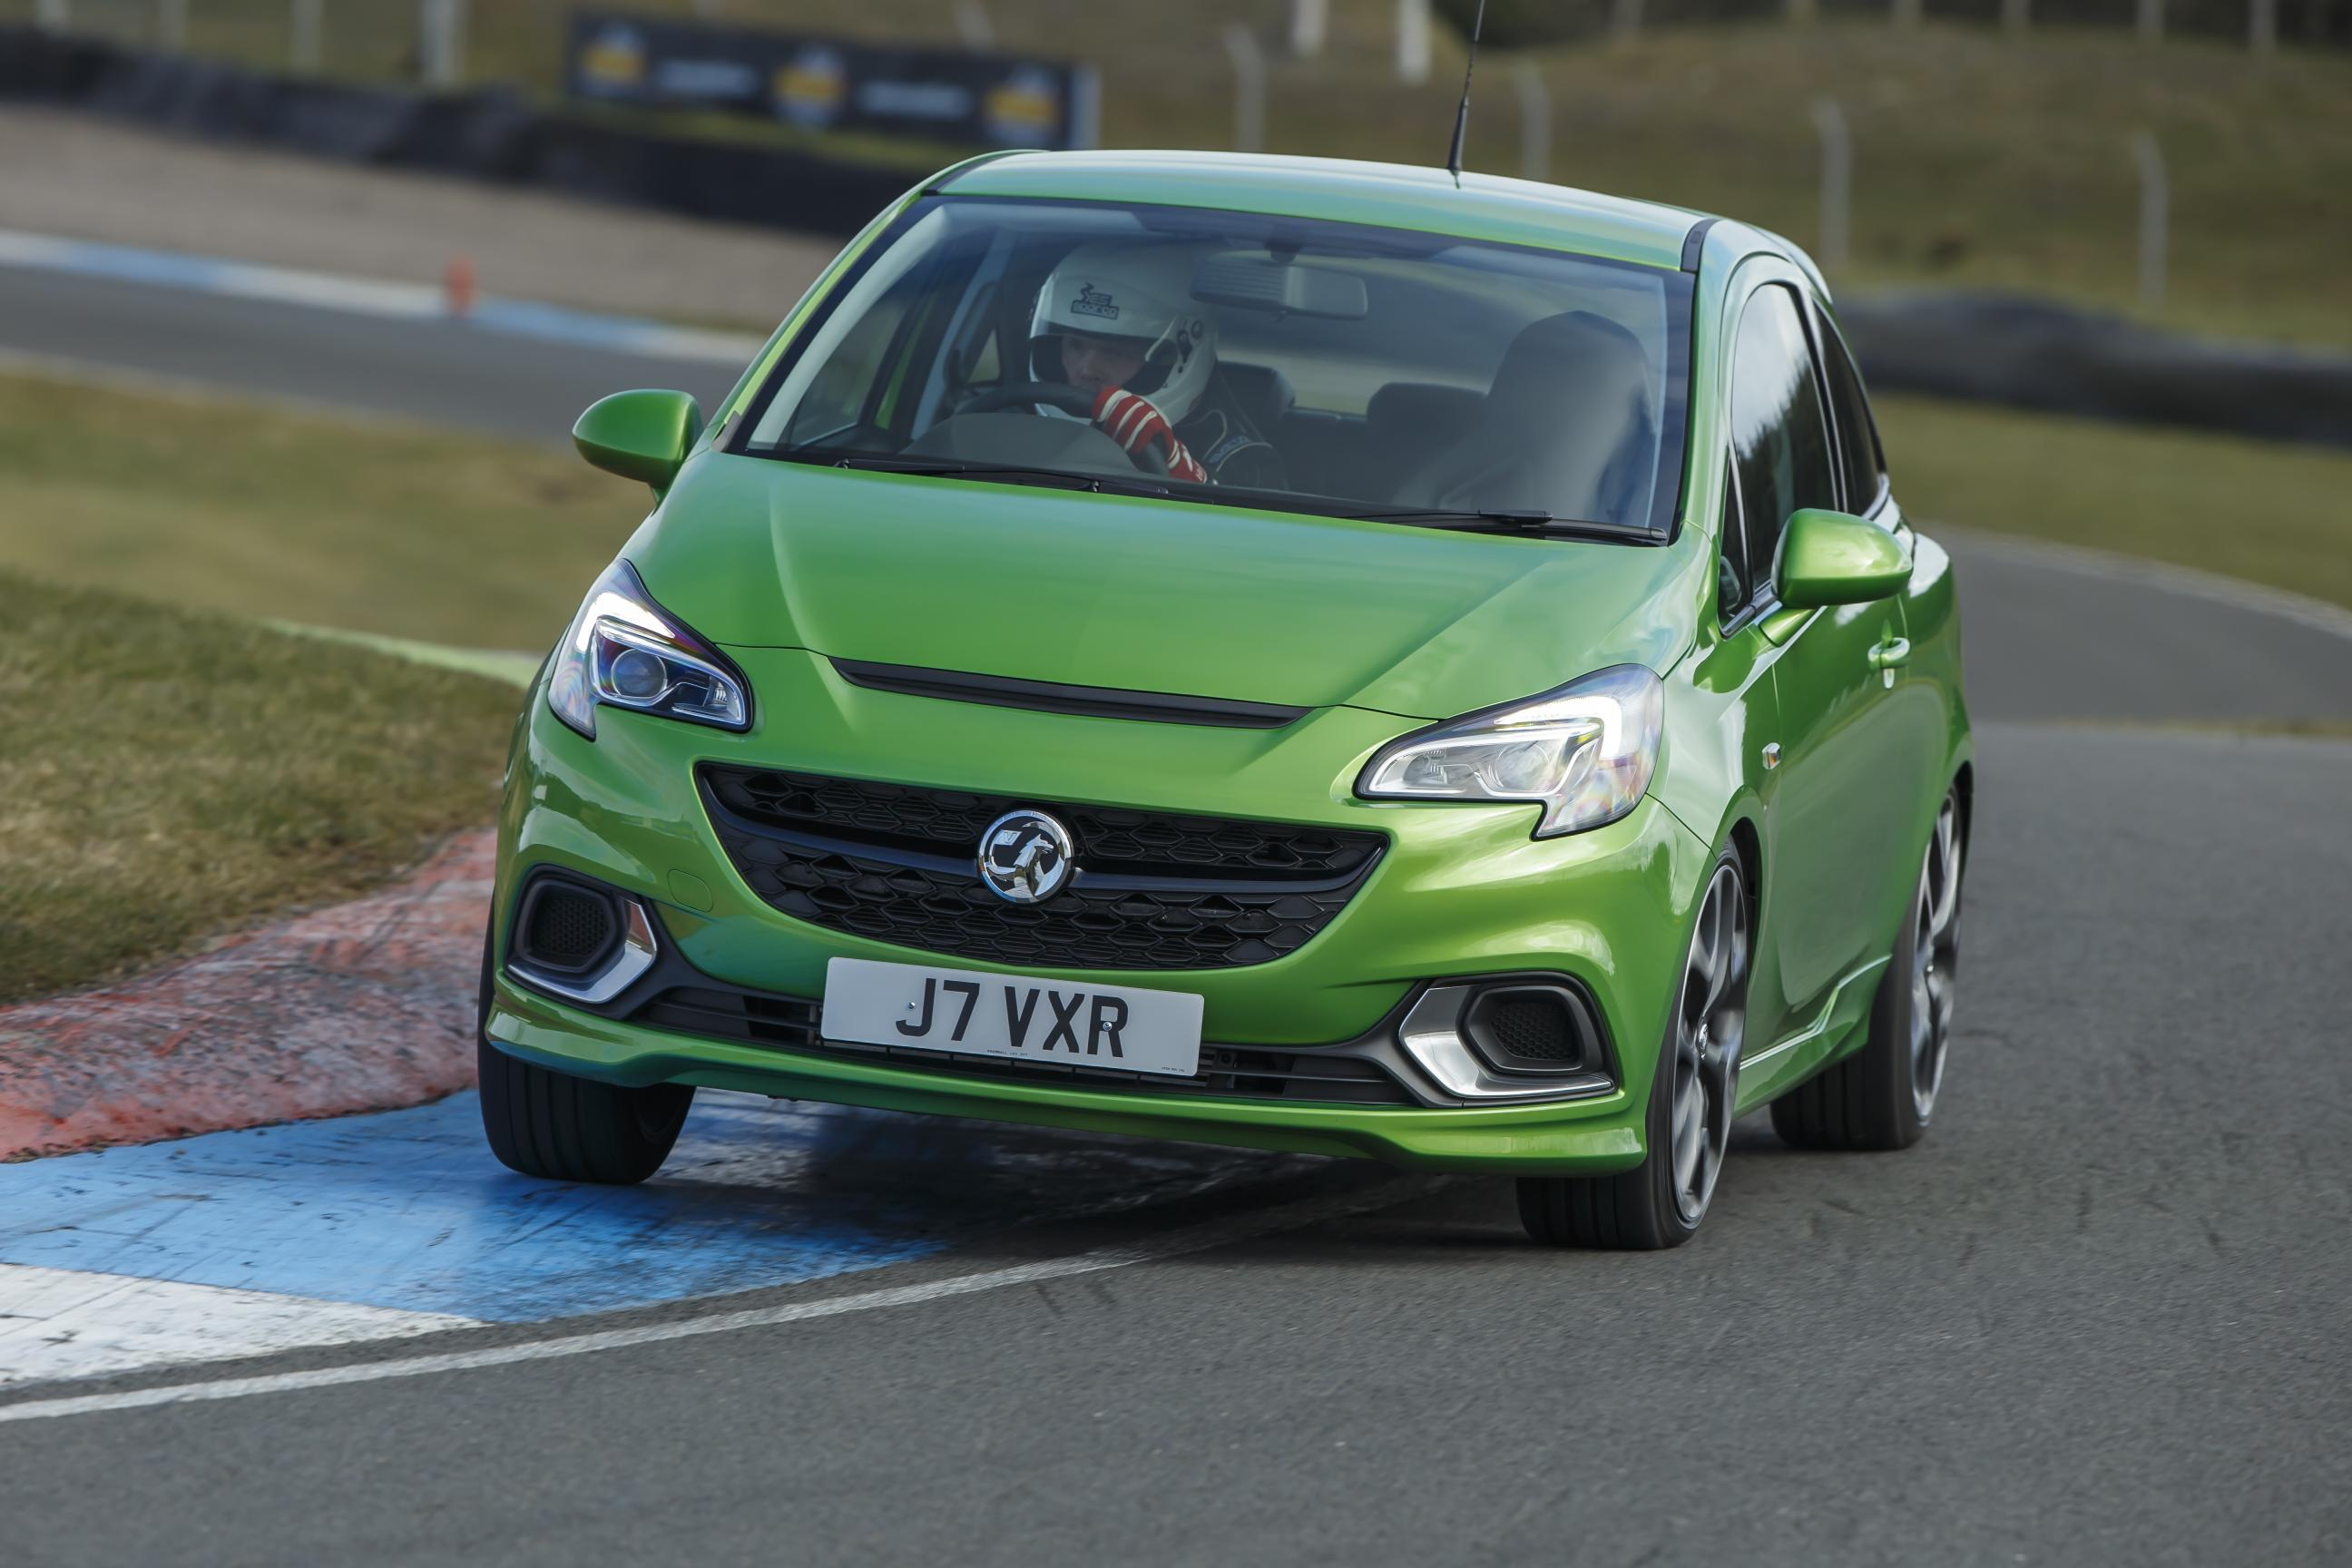 Vauxhall Corsa rally in green